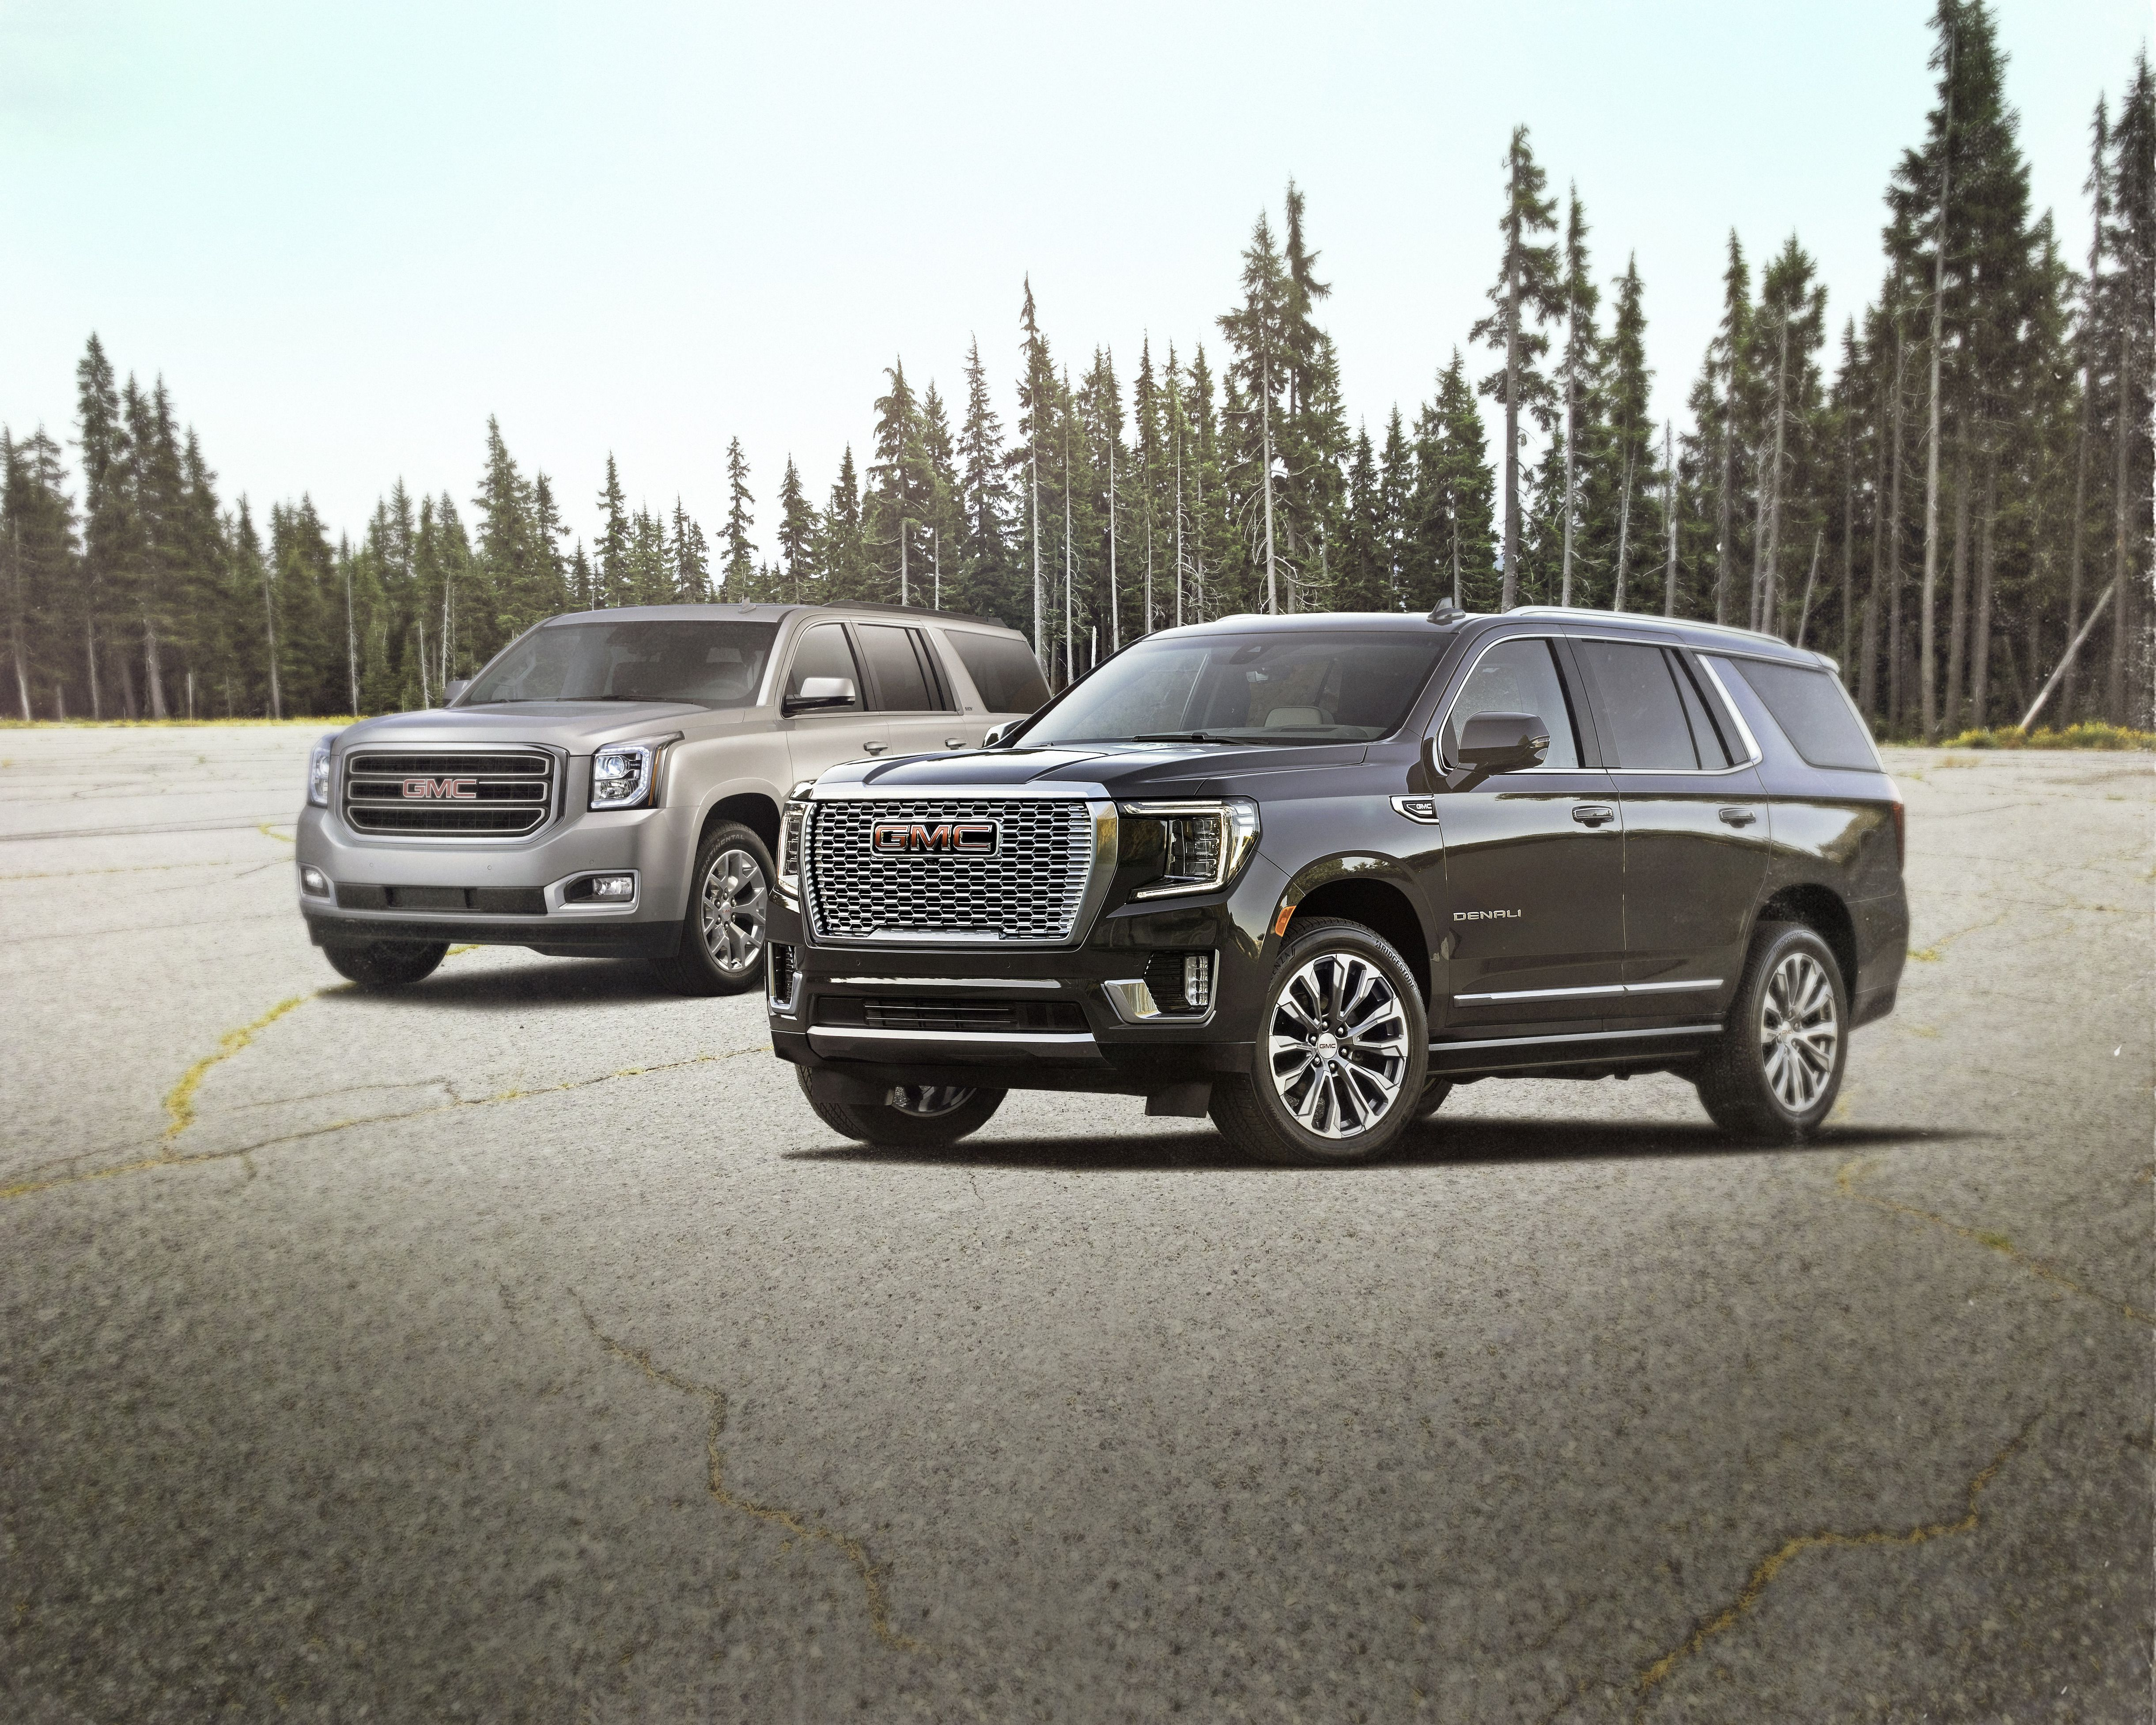 Gmc Yukon Then And Now Comparing The 2021 And 2016 Models